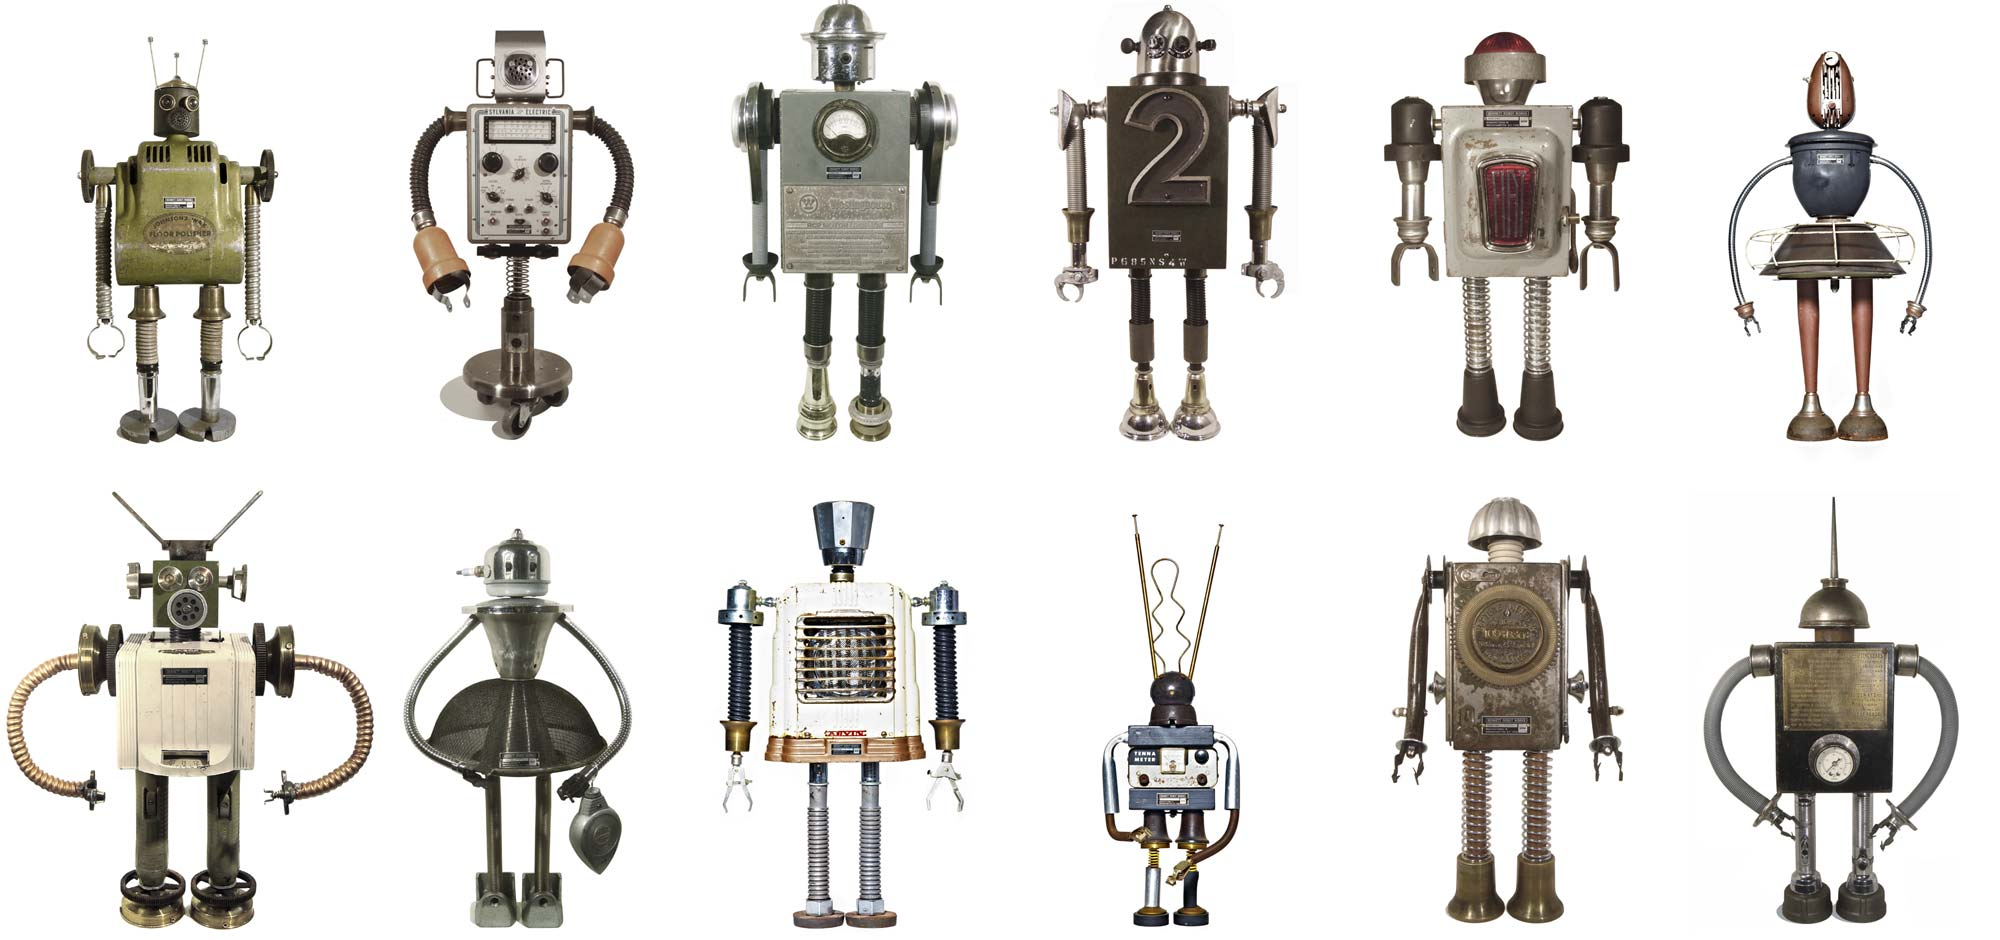 How We Can Prepare Students for the Automated Working World